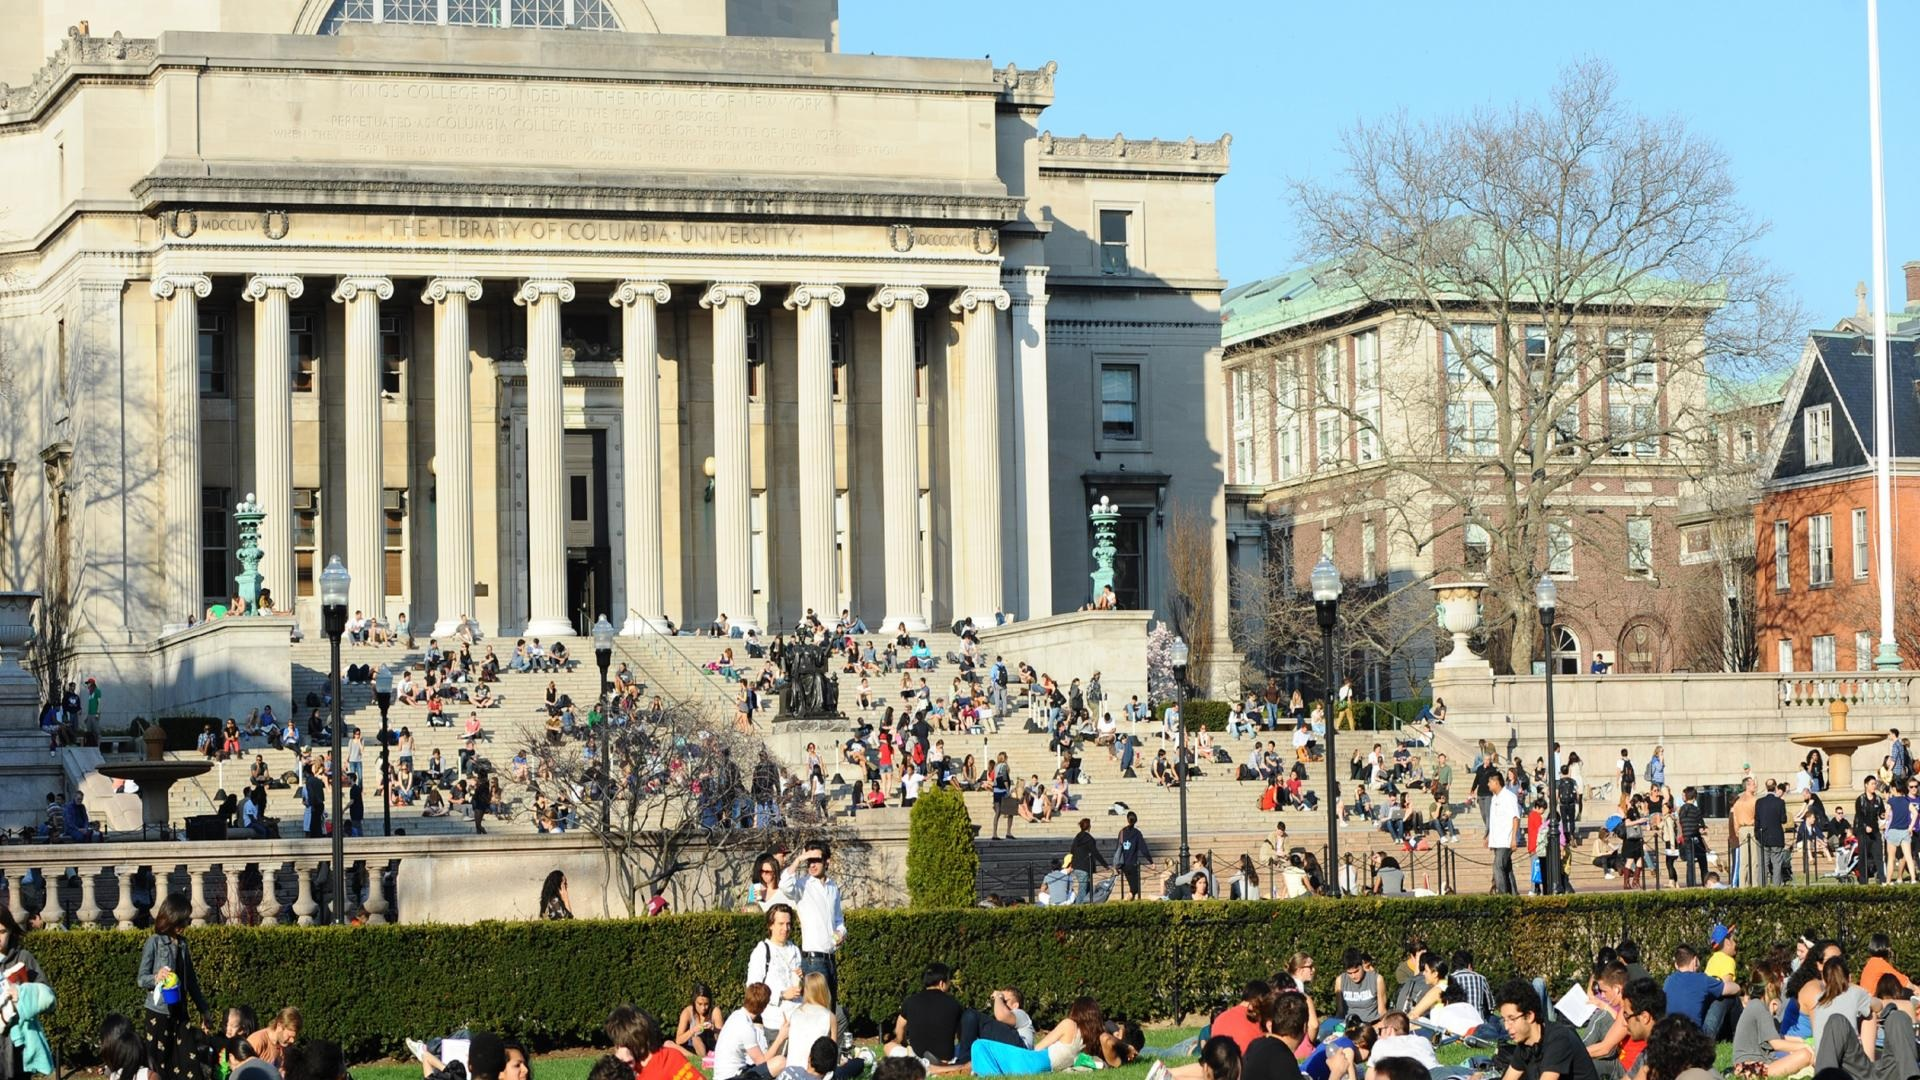 Bombshell Suit Alleges Columbia University Dean Coerced Student Into Sex